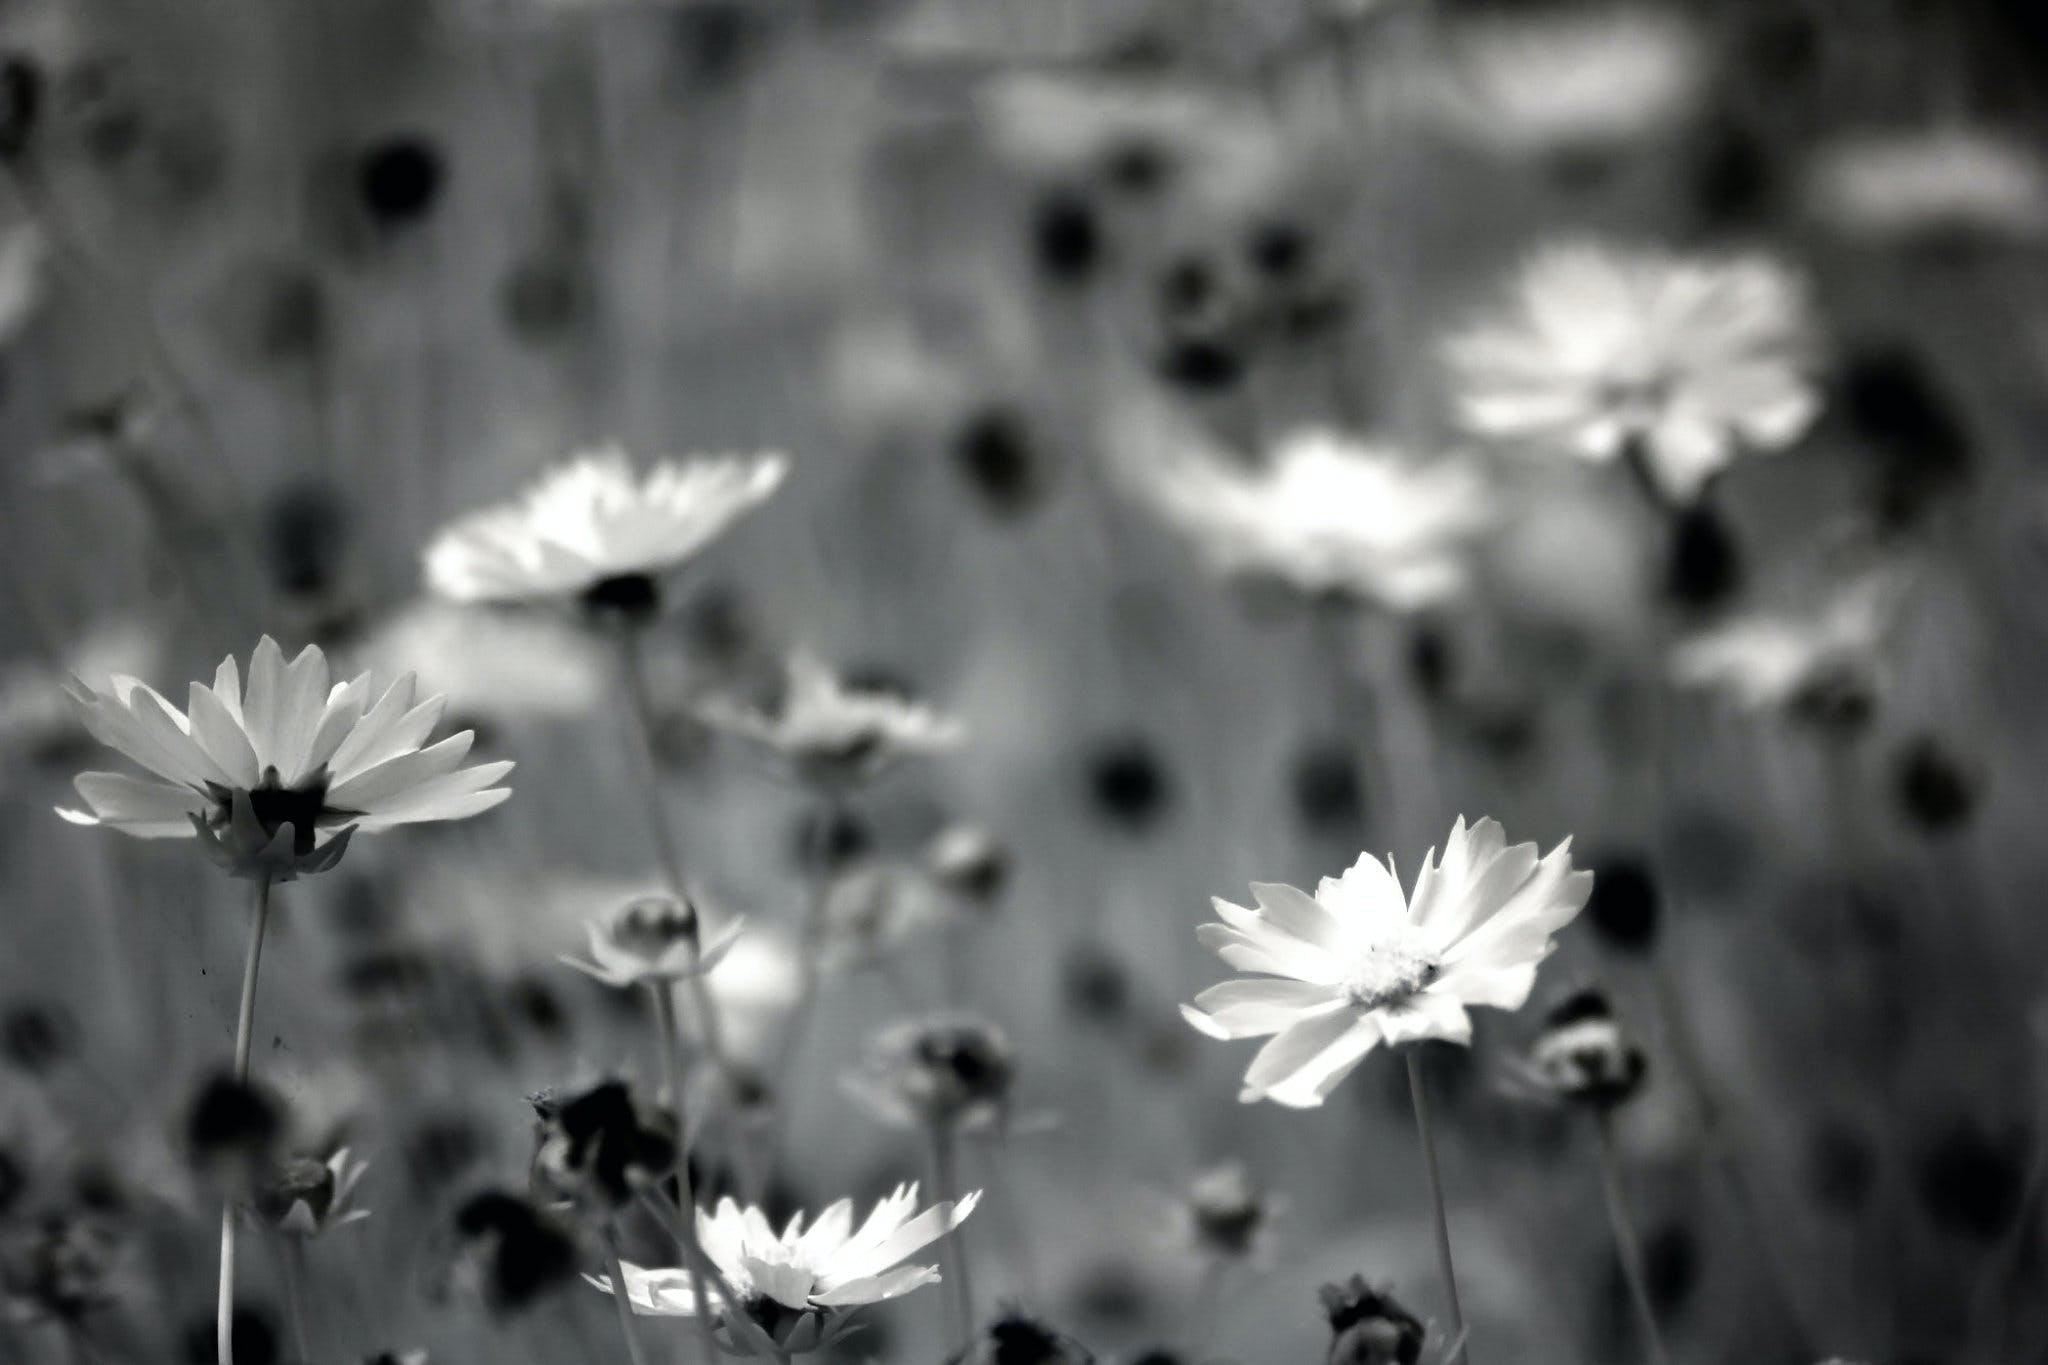 Grayscale Photography of Daisy Flowers